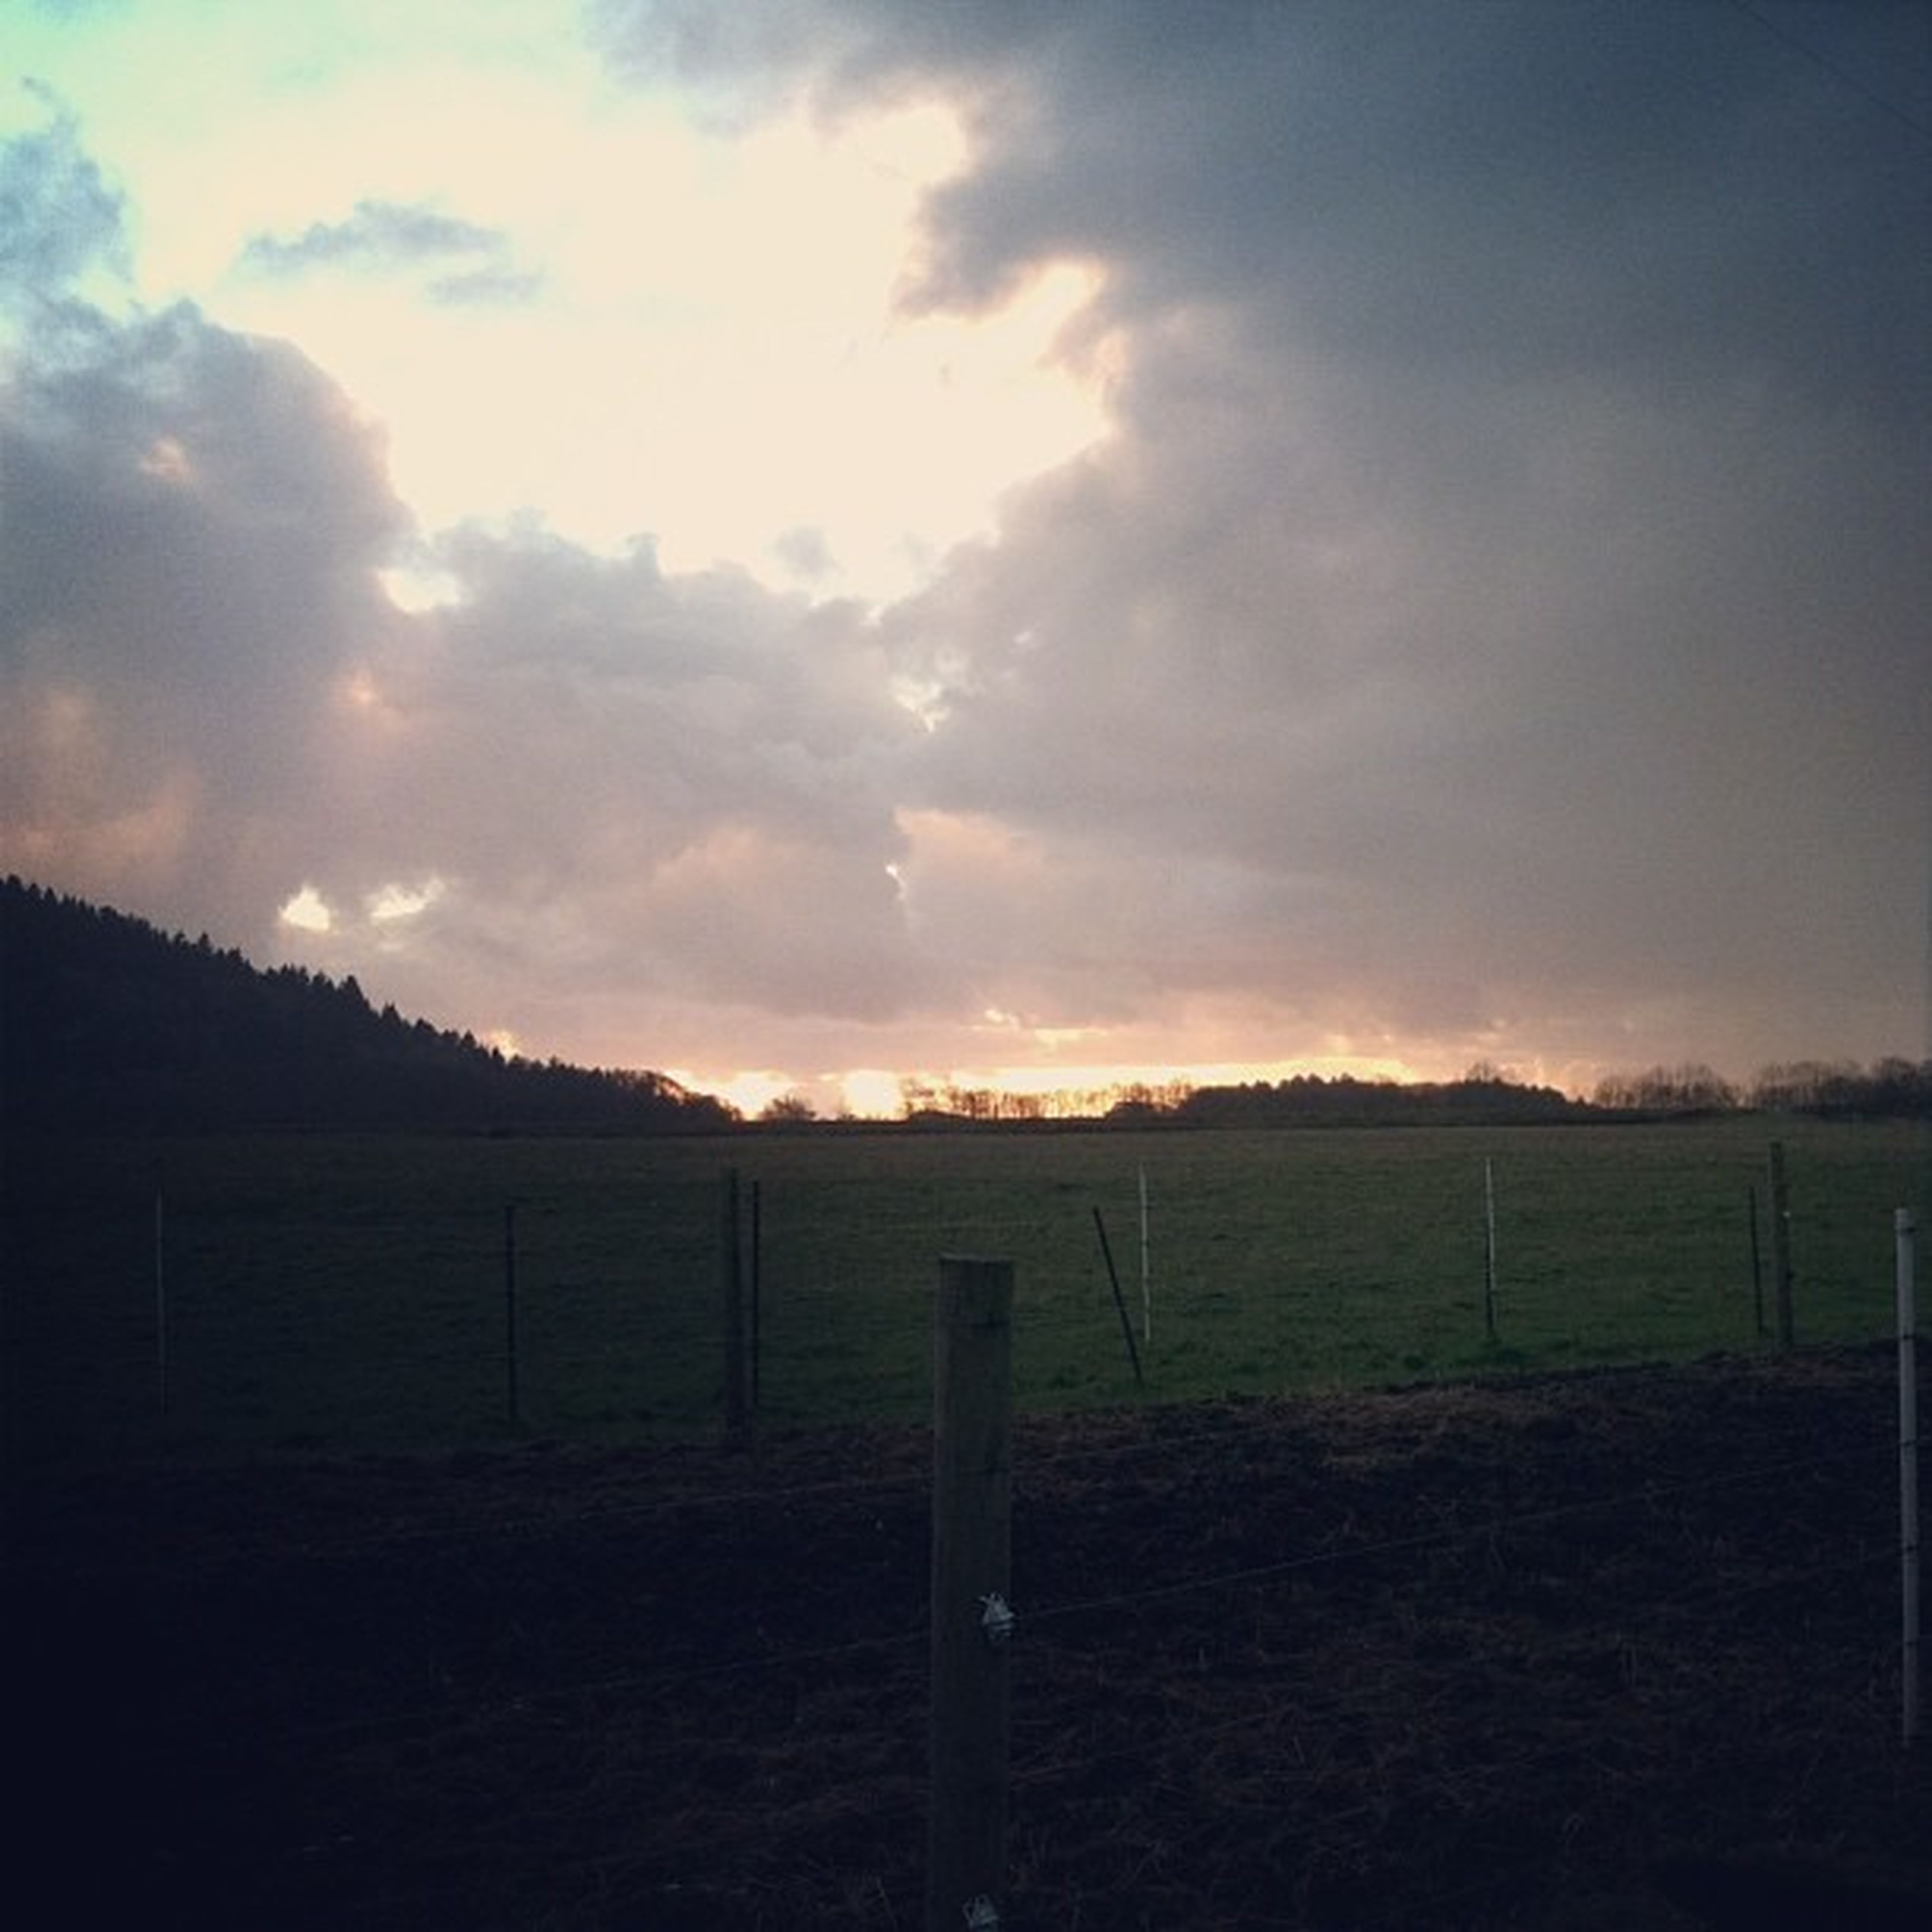 fence, sky, field, landscape, tranquility, tranquil scene, cloud - sky, grass, protection, scenics, nature, safety, beauty in nature, rural scene, sunset, grassy, railing, cloud, security, cloudy